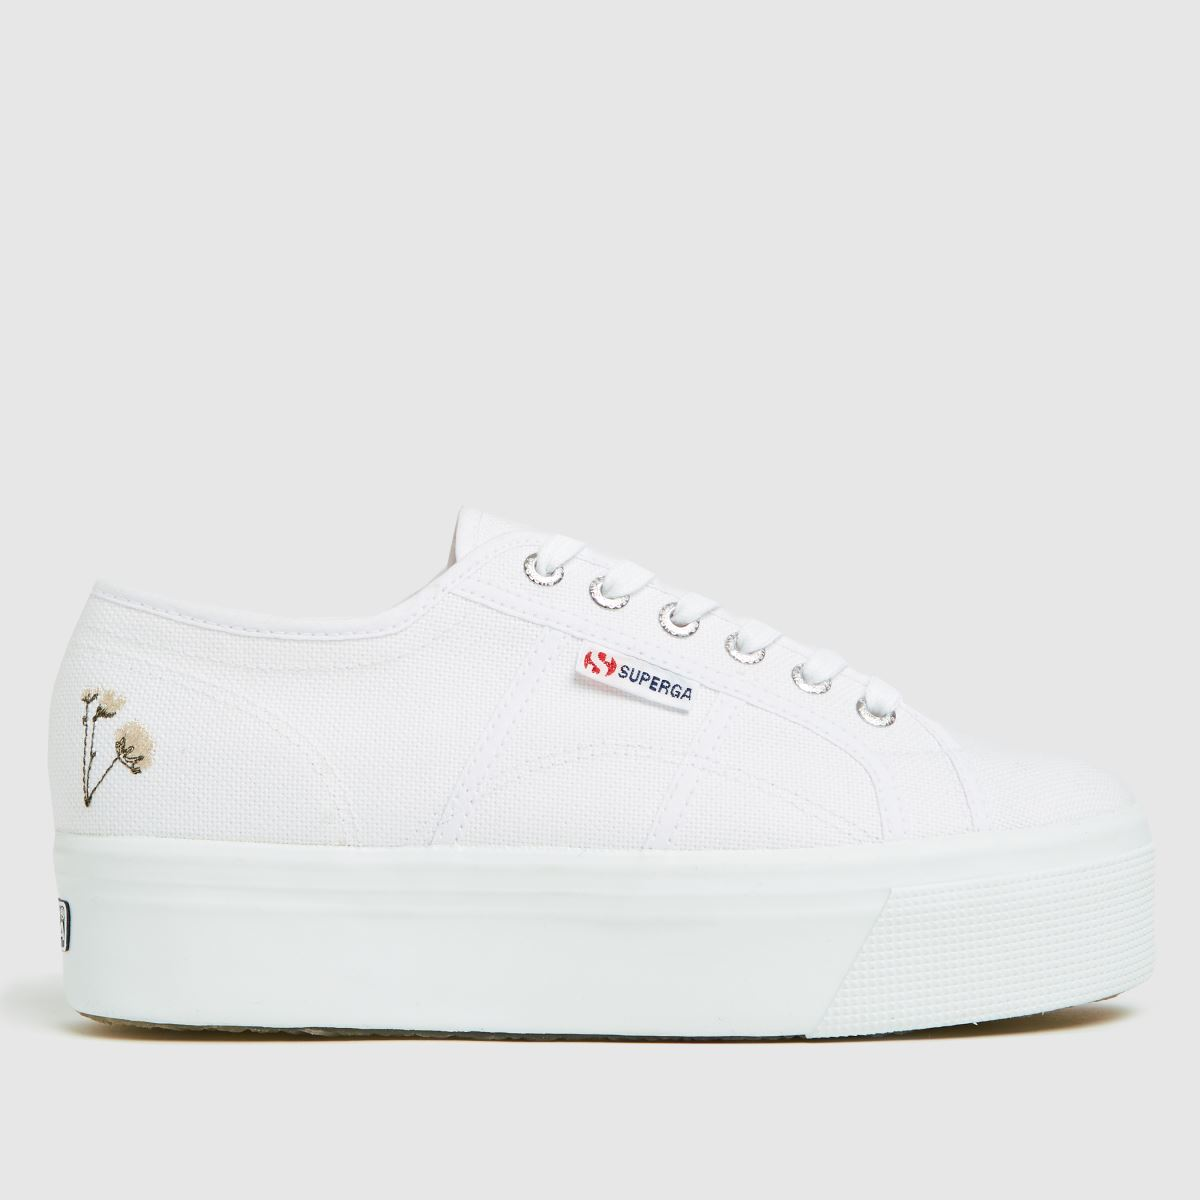 Superga White 2790 Flower Bloom Trainers